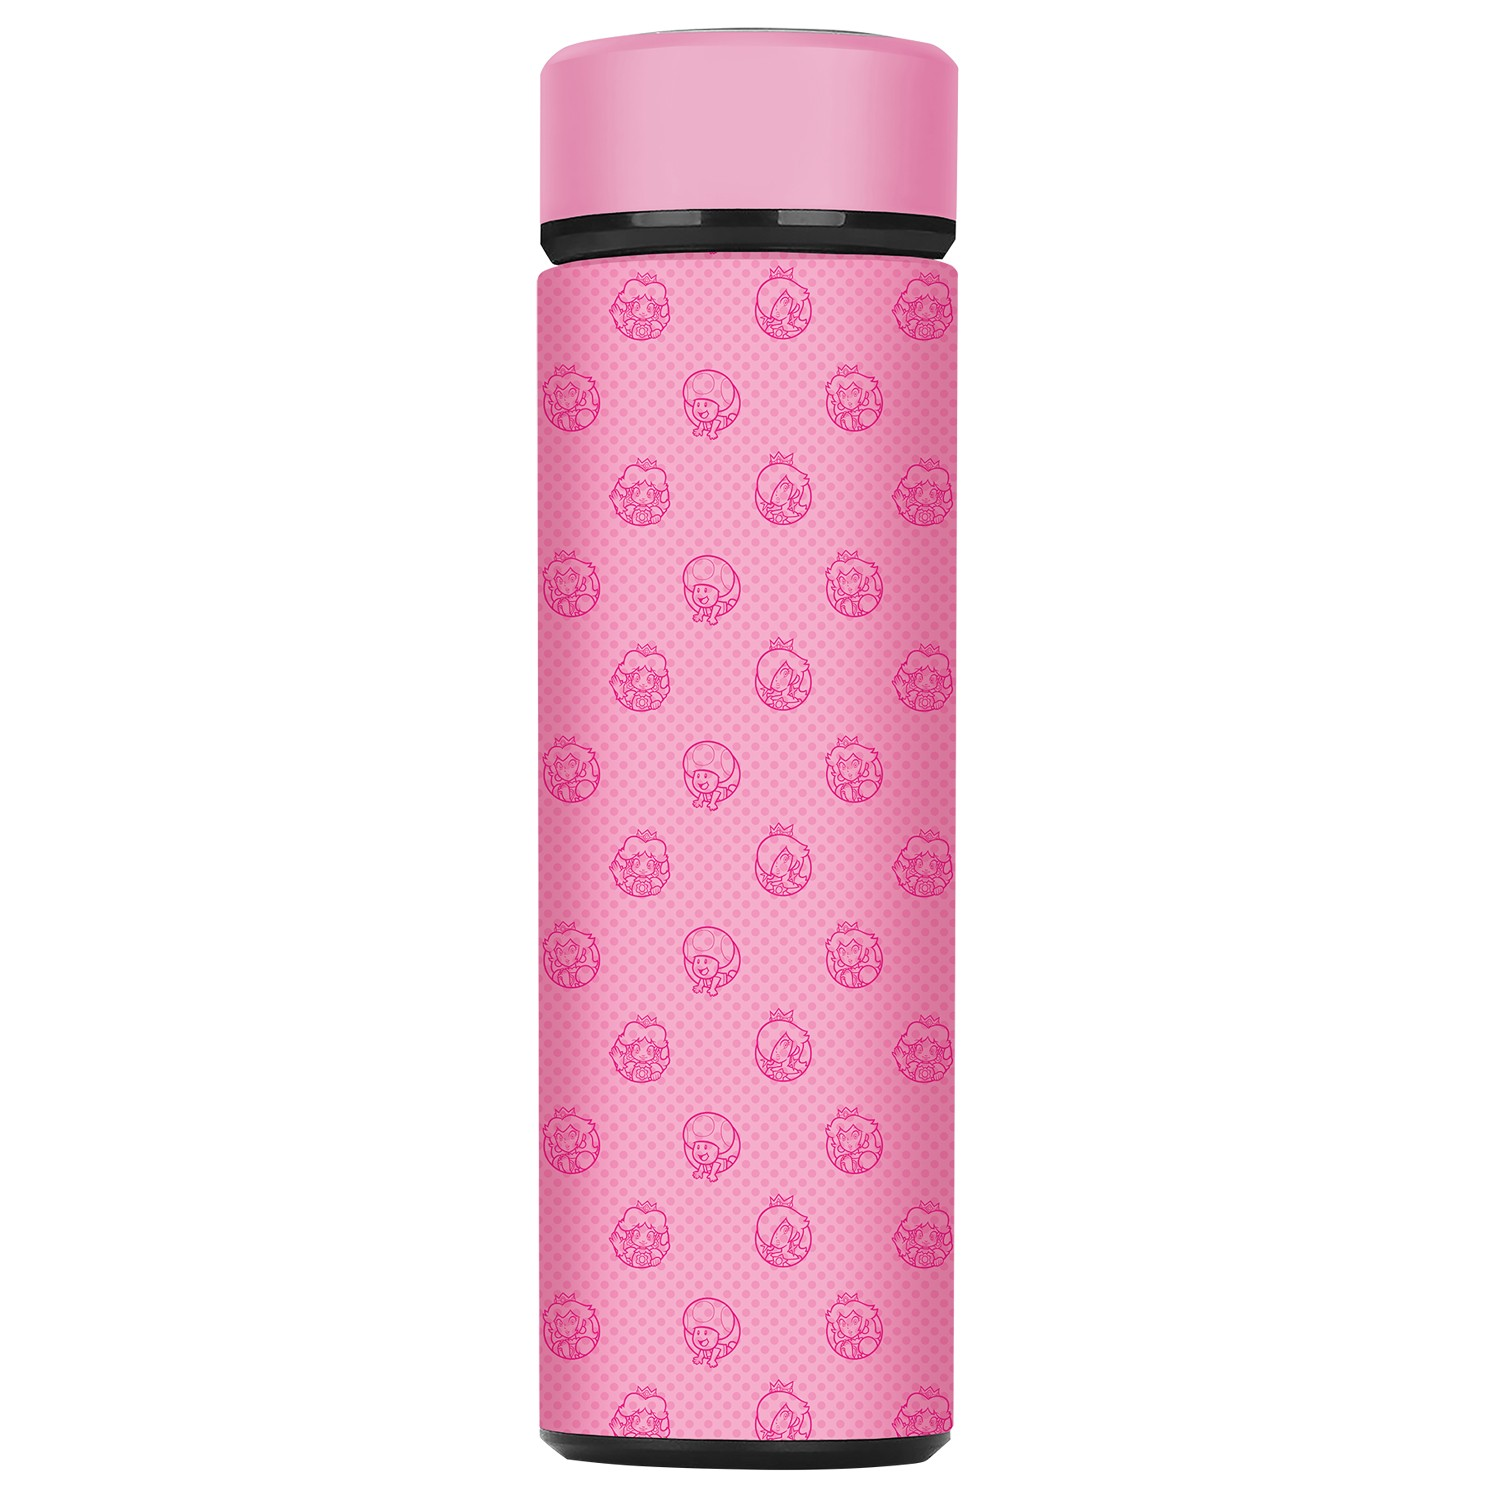 "Super Mario™ ""Princess Peach"" Insulated Steel Sport Bottle - Officially Licensed by Nintendo"